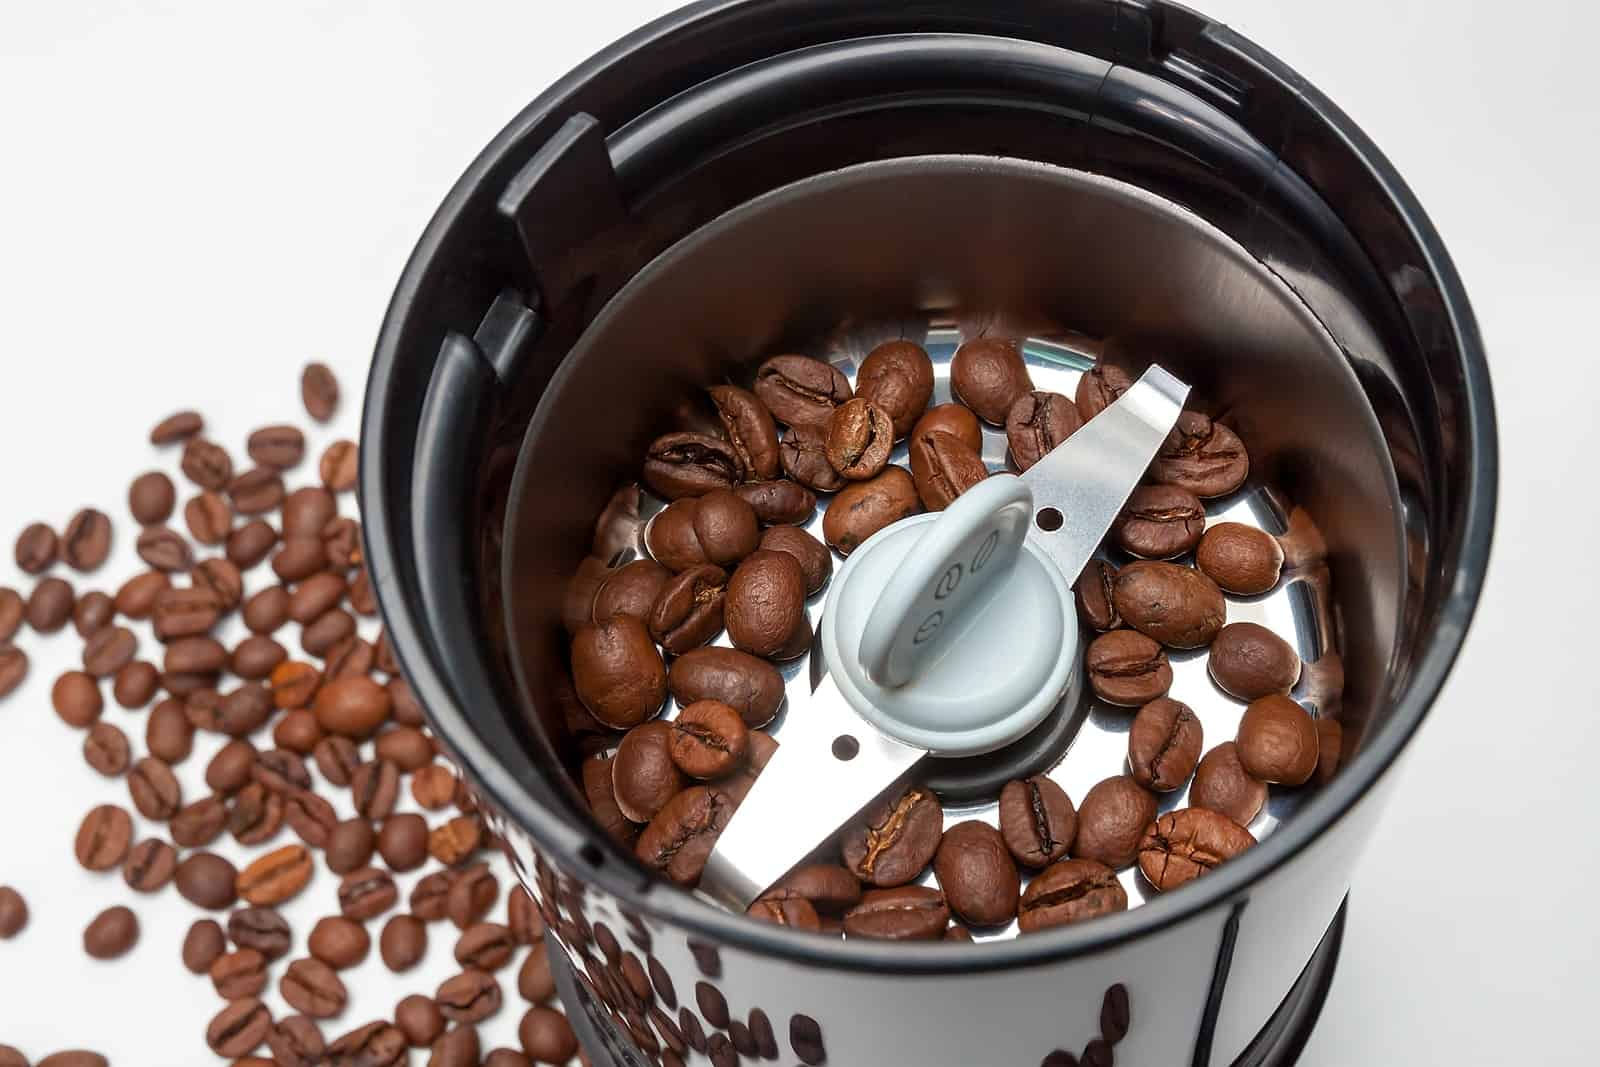 Advantage Of The Best Burr Coffee Grinder